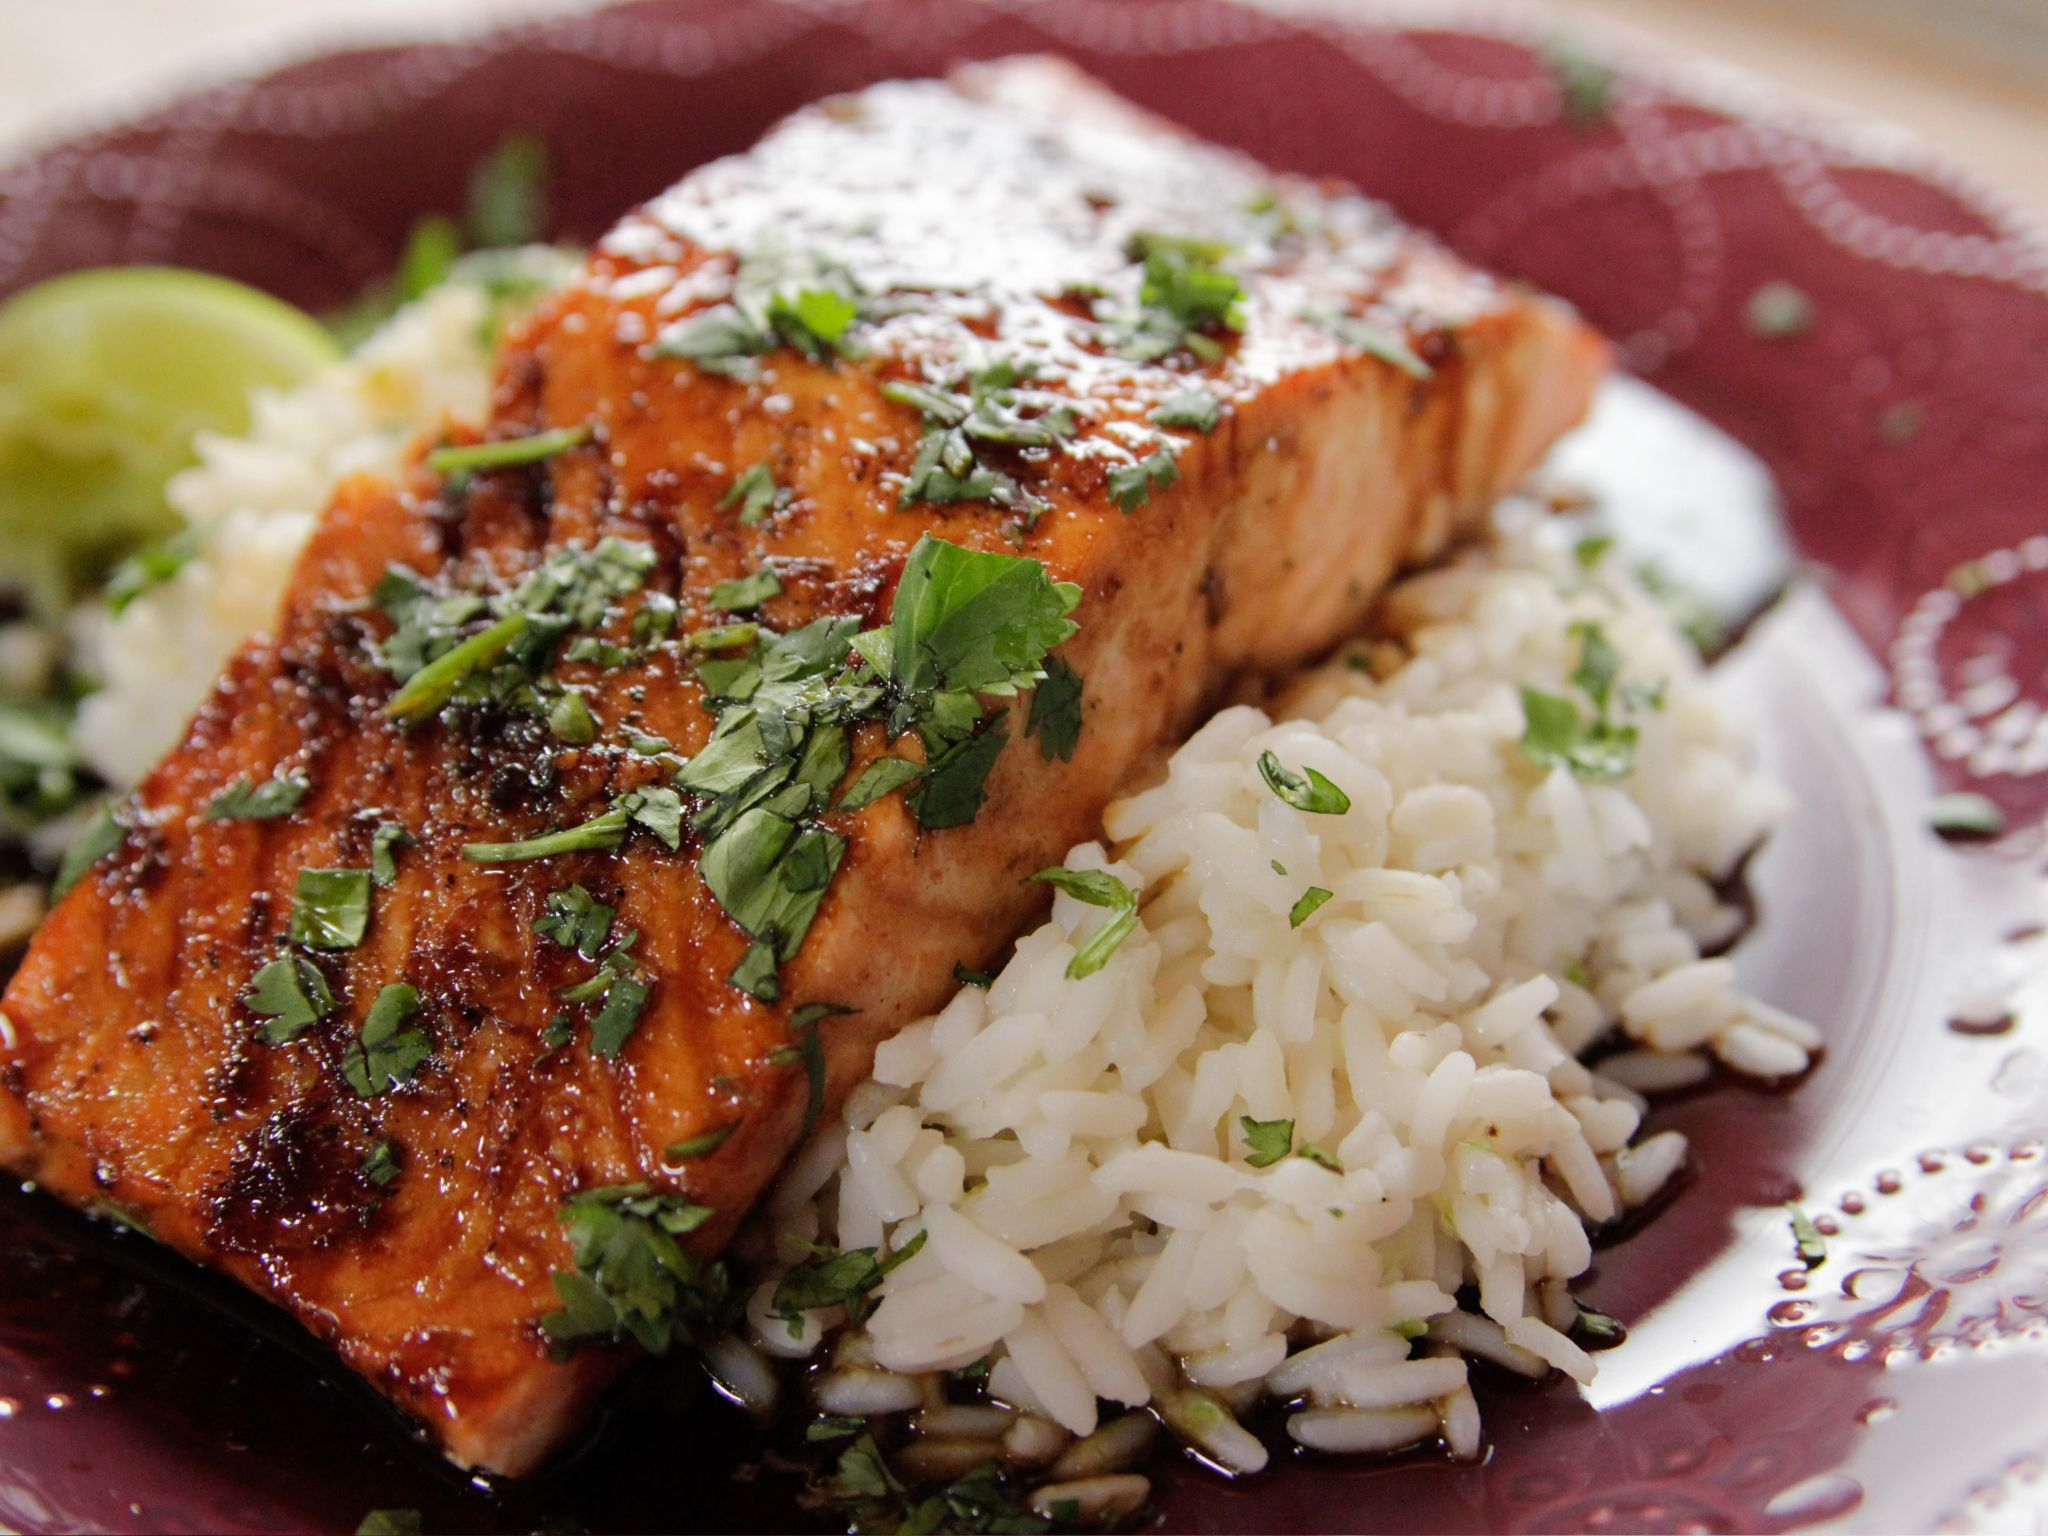 Cilantro lime salmon recipe lime salmon recipes salmon recipes cilantro lime salmon recipe from ree drummond via food network leave out cilantro replace forumfinder Gallery